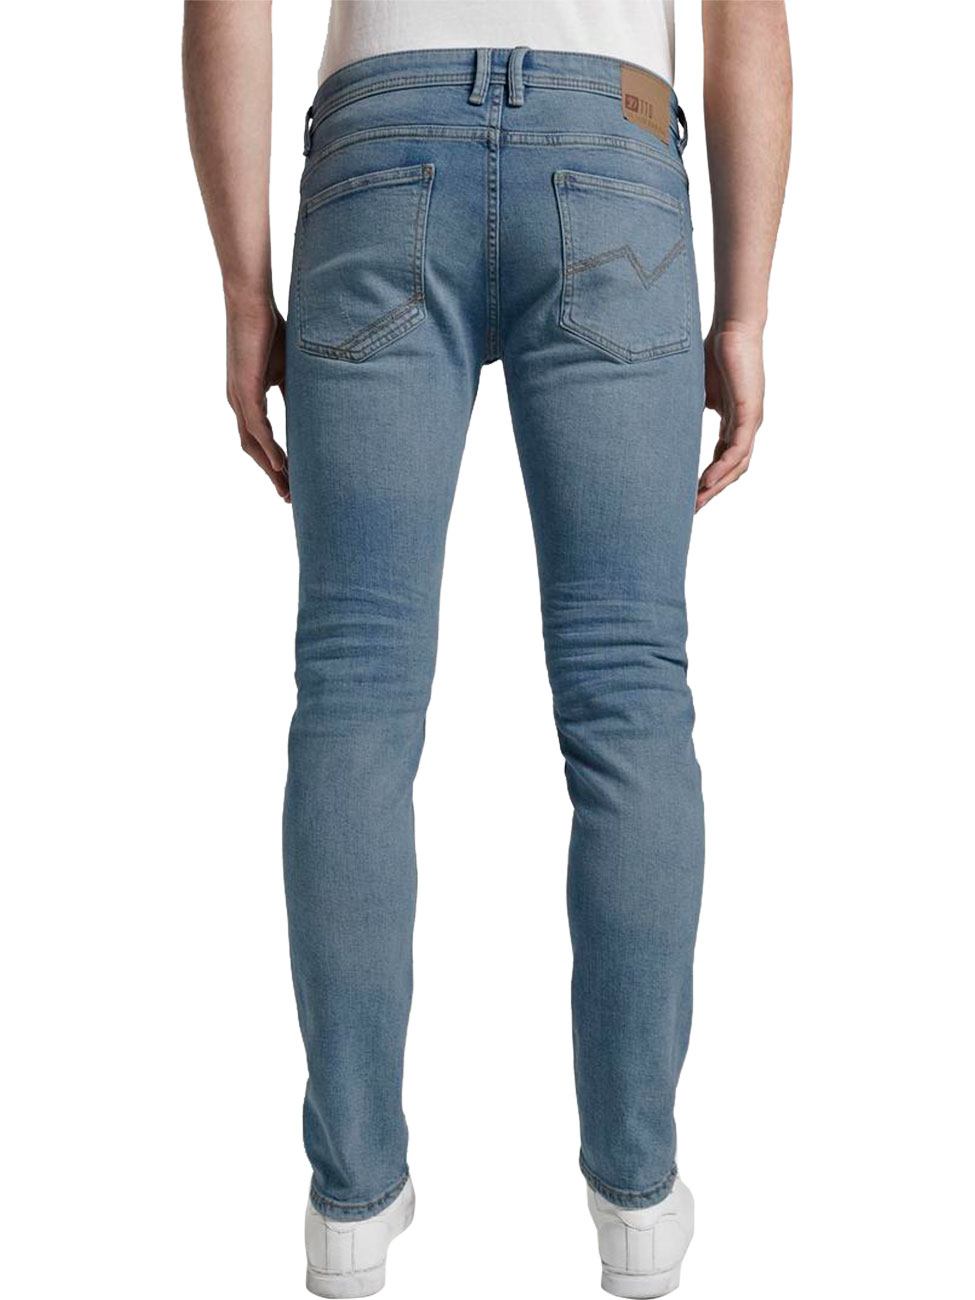 tom-tailor-denim-herren-jeans-piers-super-slim-fit-blau-bright-blue-denim, 53.99 EUR @ jeans